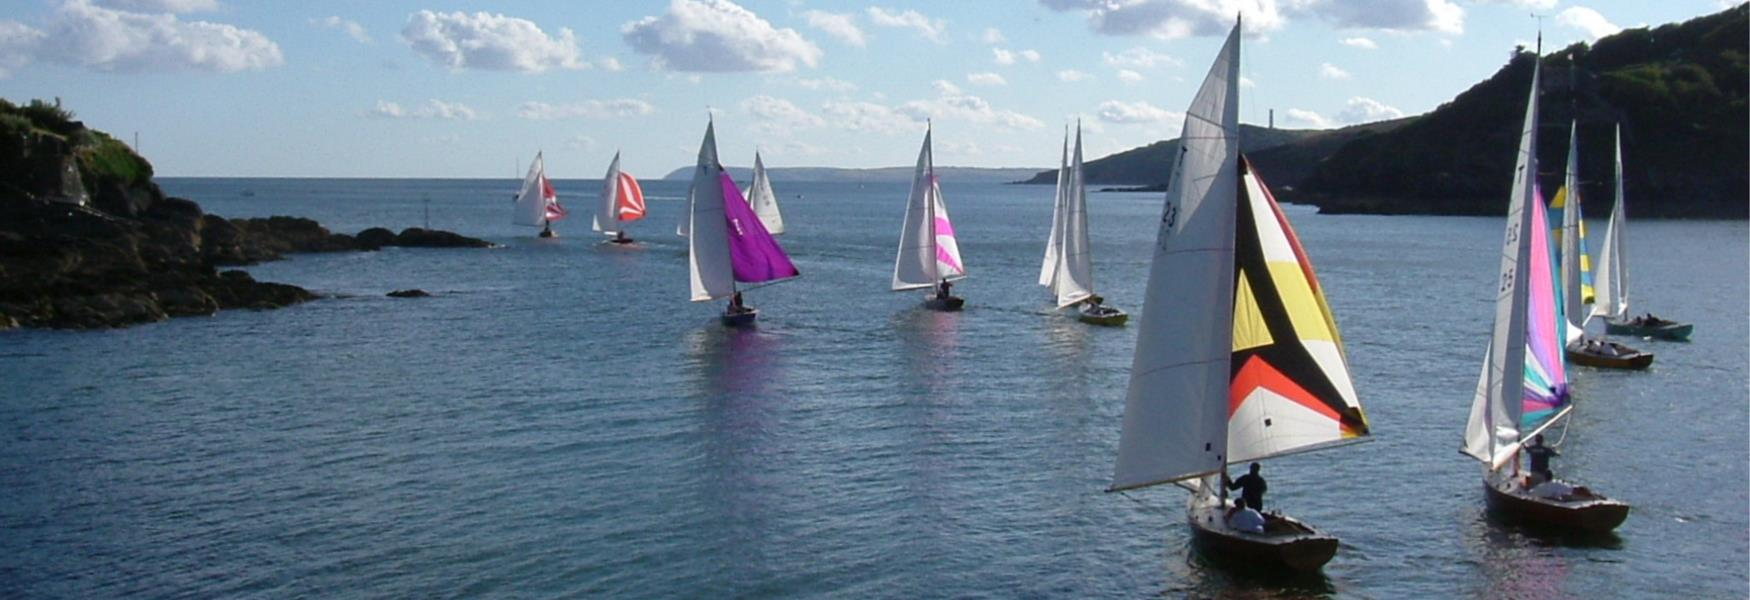 Troy class dinghies racing